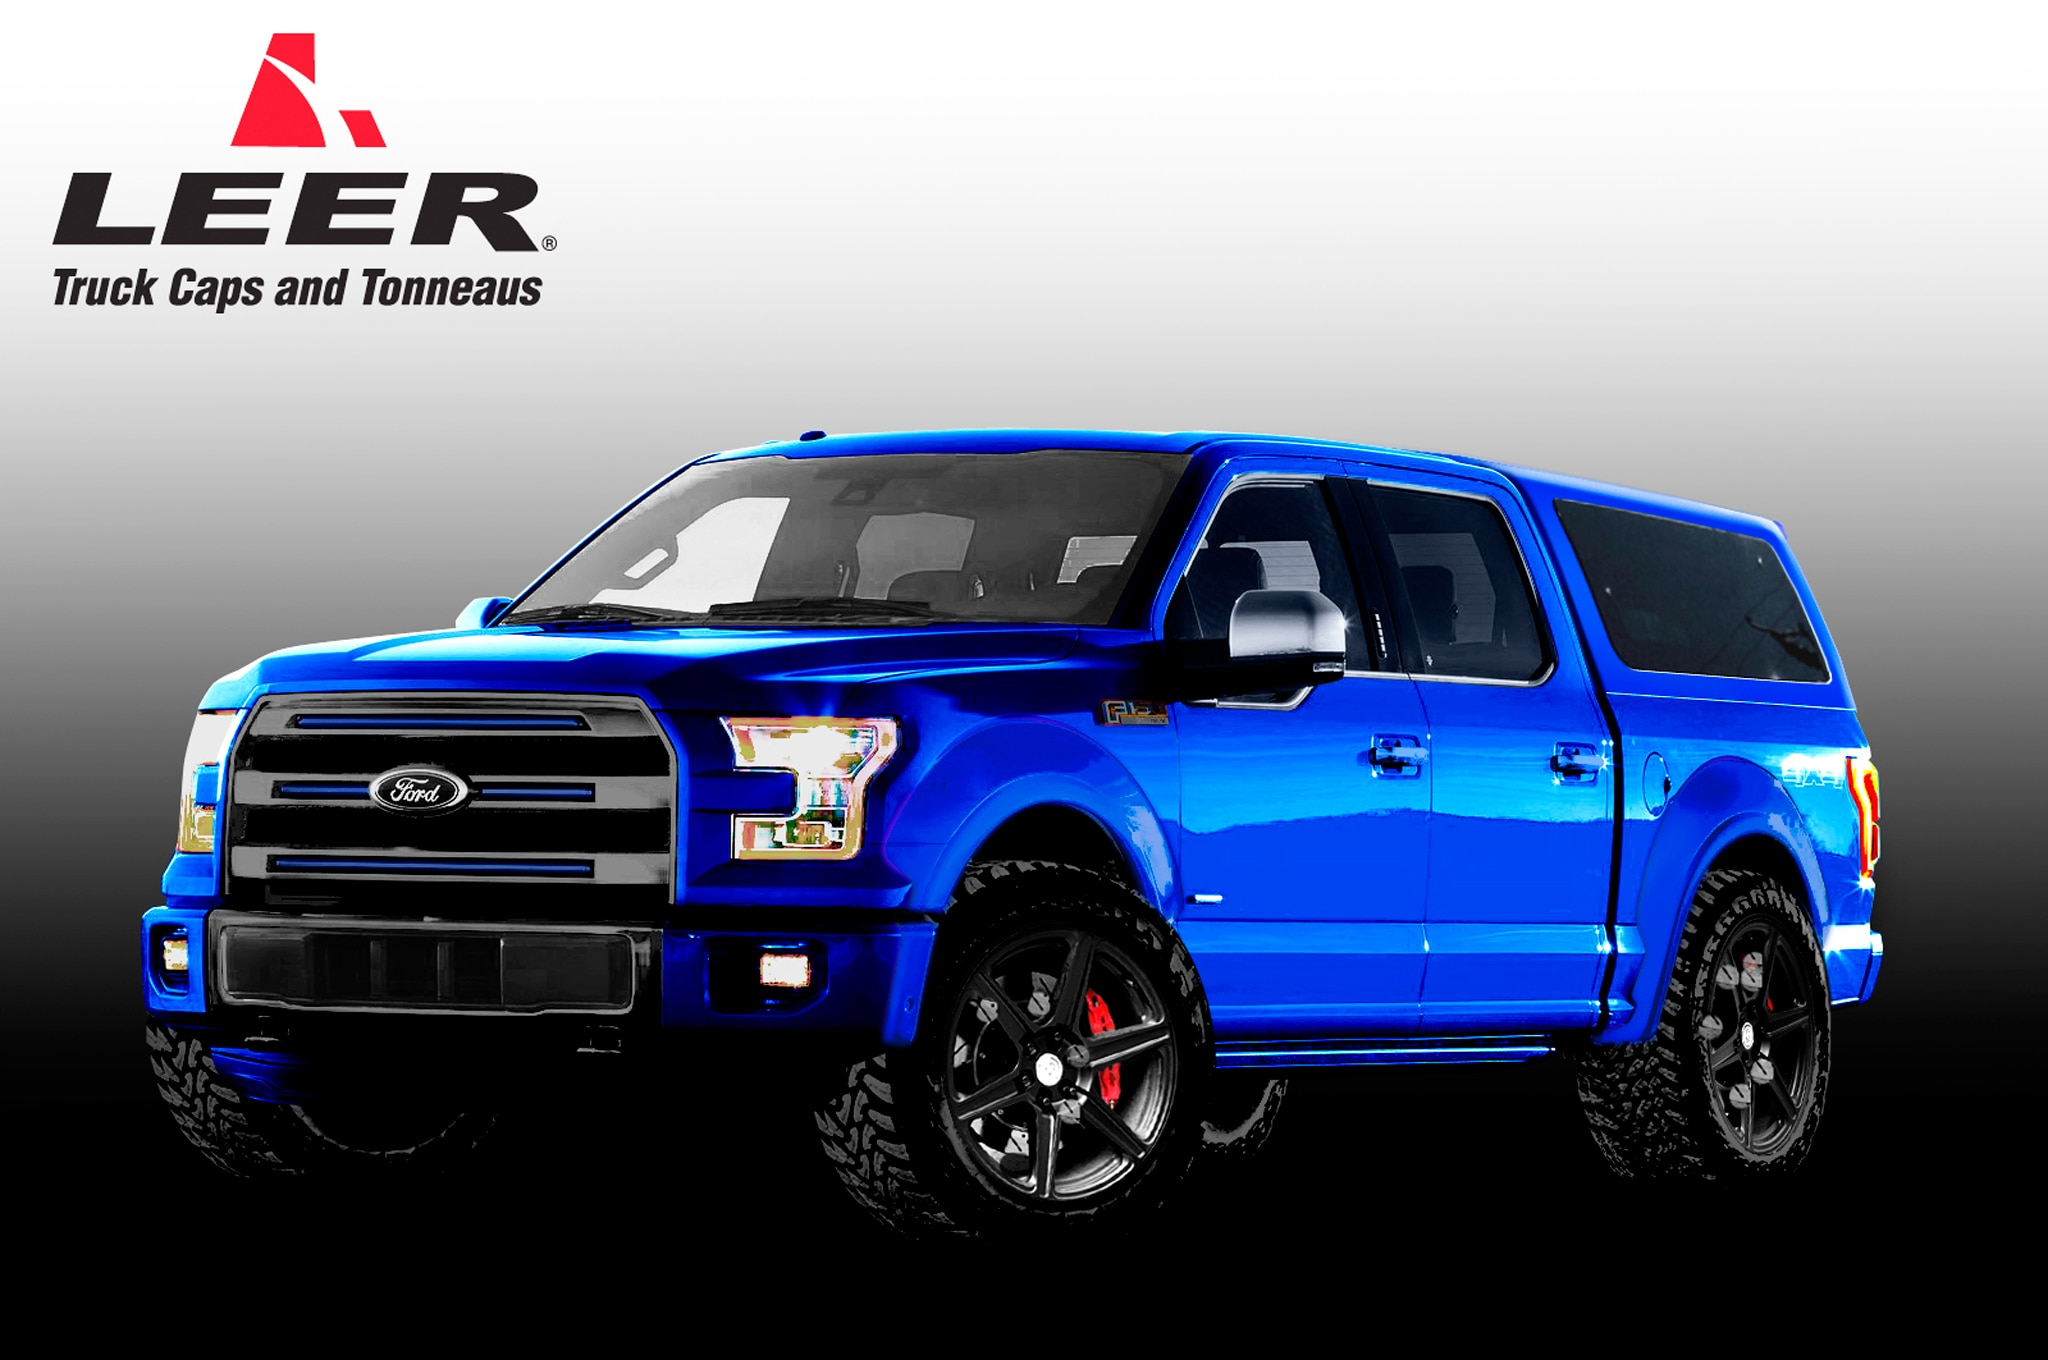 The Leer Edition Ford F  Supercrew Thats Headed To Sema Has A Six Inch Suspension Lift And New Off Road Wheels And Tires But It Also Has A More